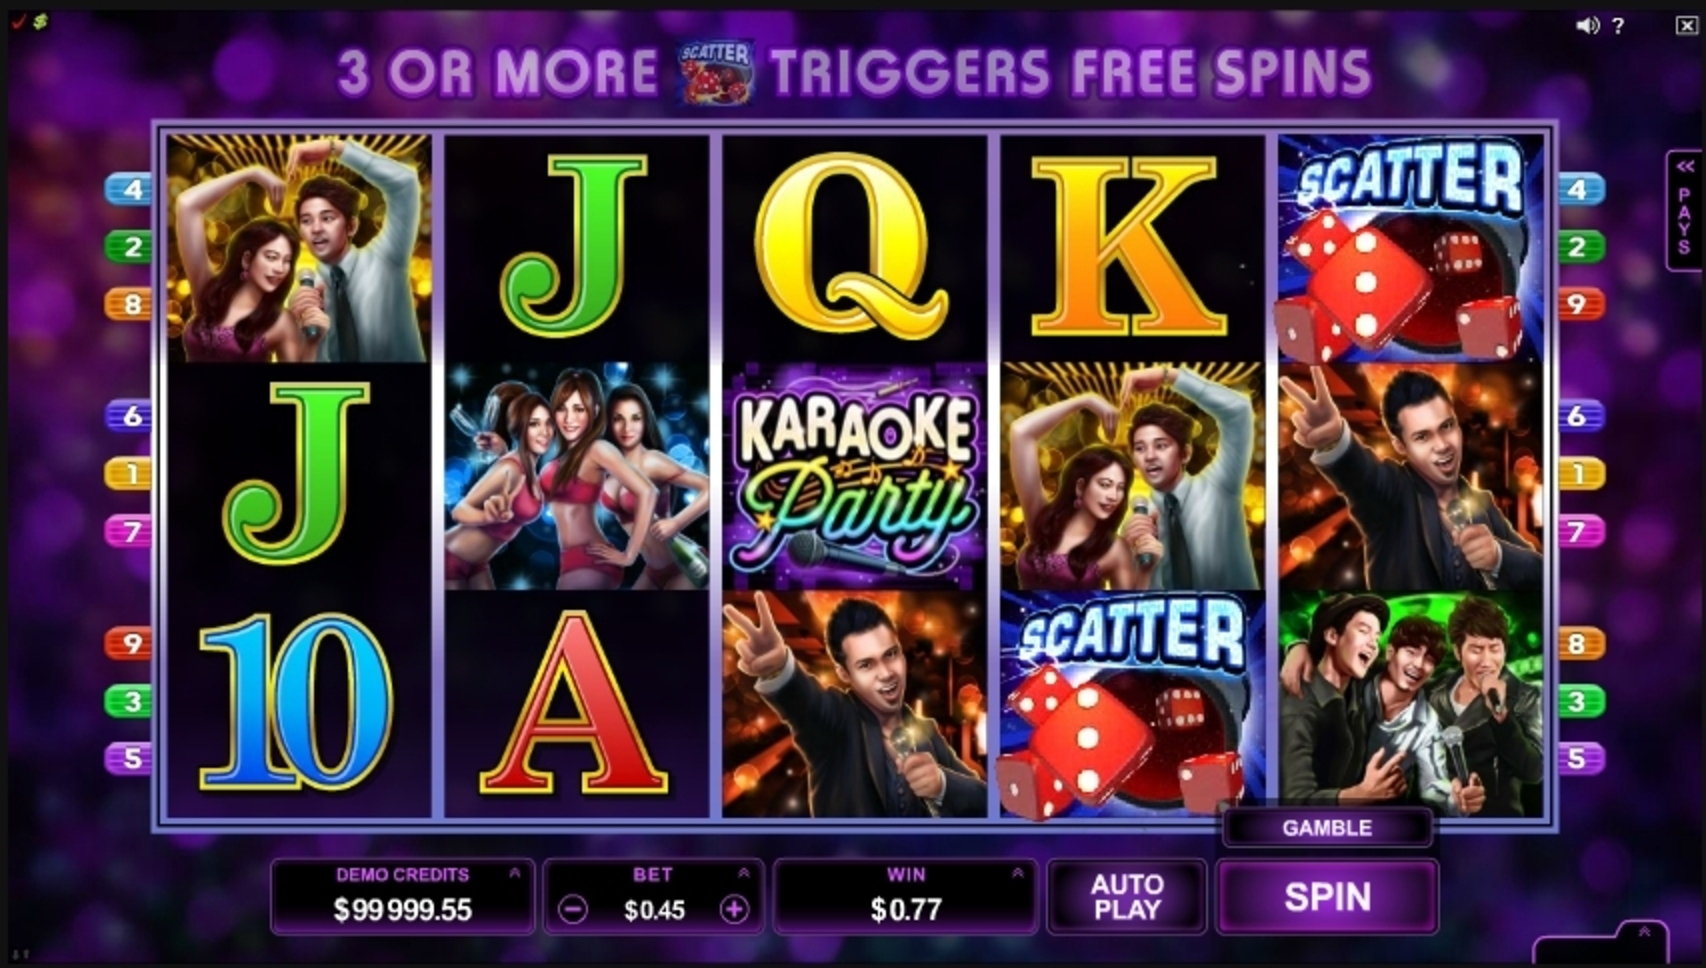 Win Money in Karaoke Party Free Slot Game by Microgaming